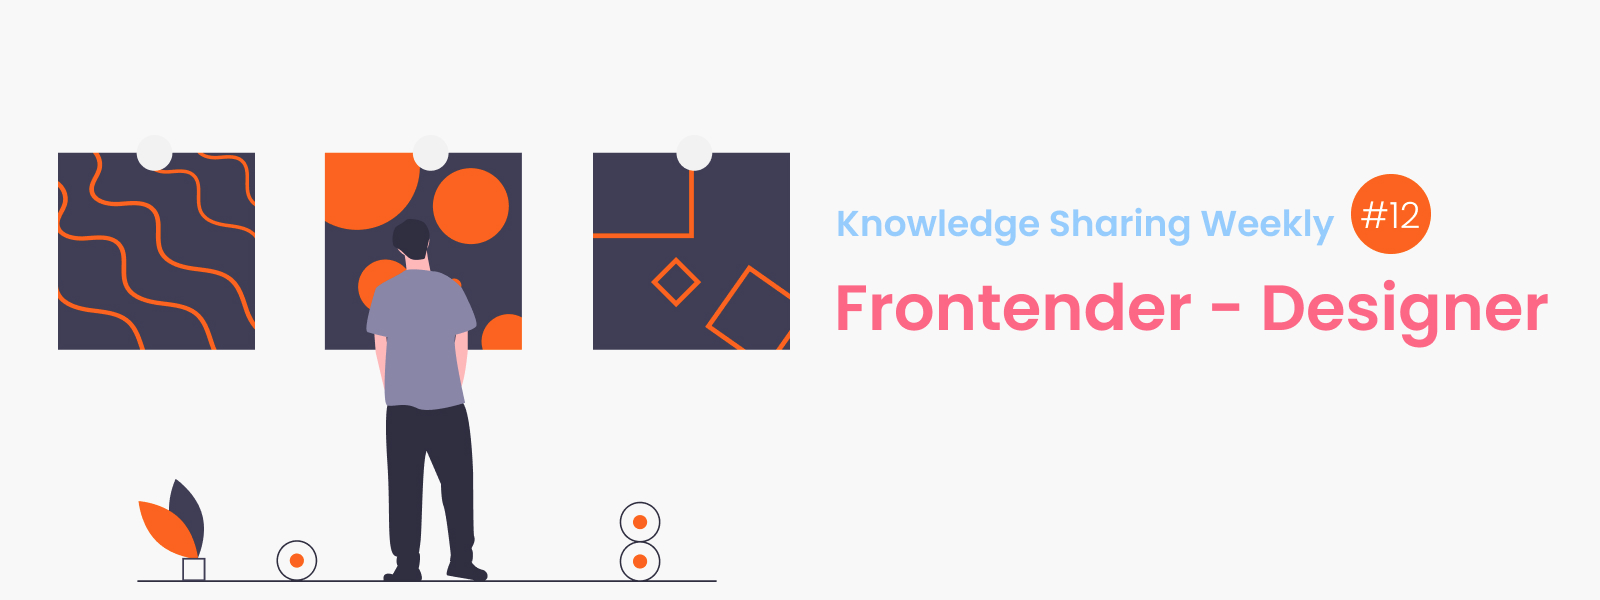 Frontend-Design Knowledge Sharing #12 - YoungInnovations' Blog